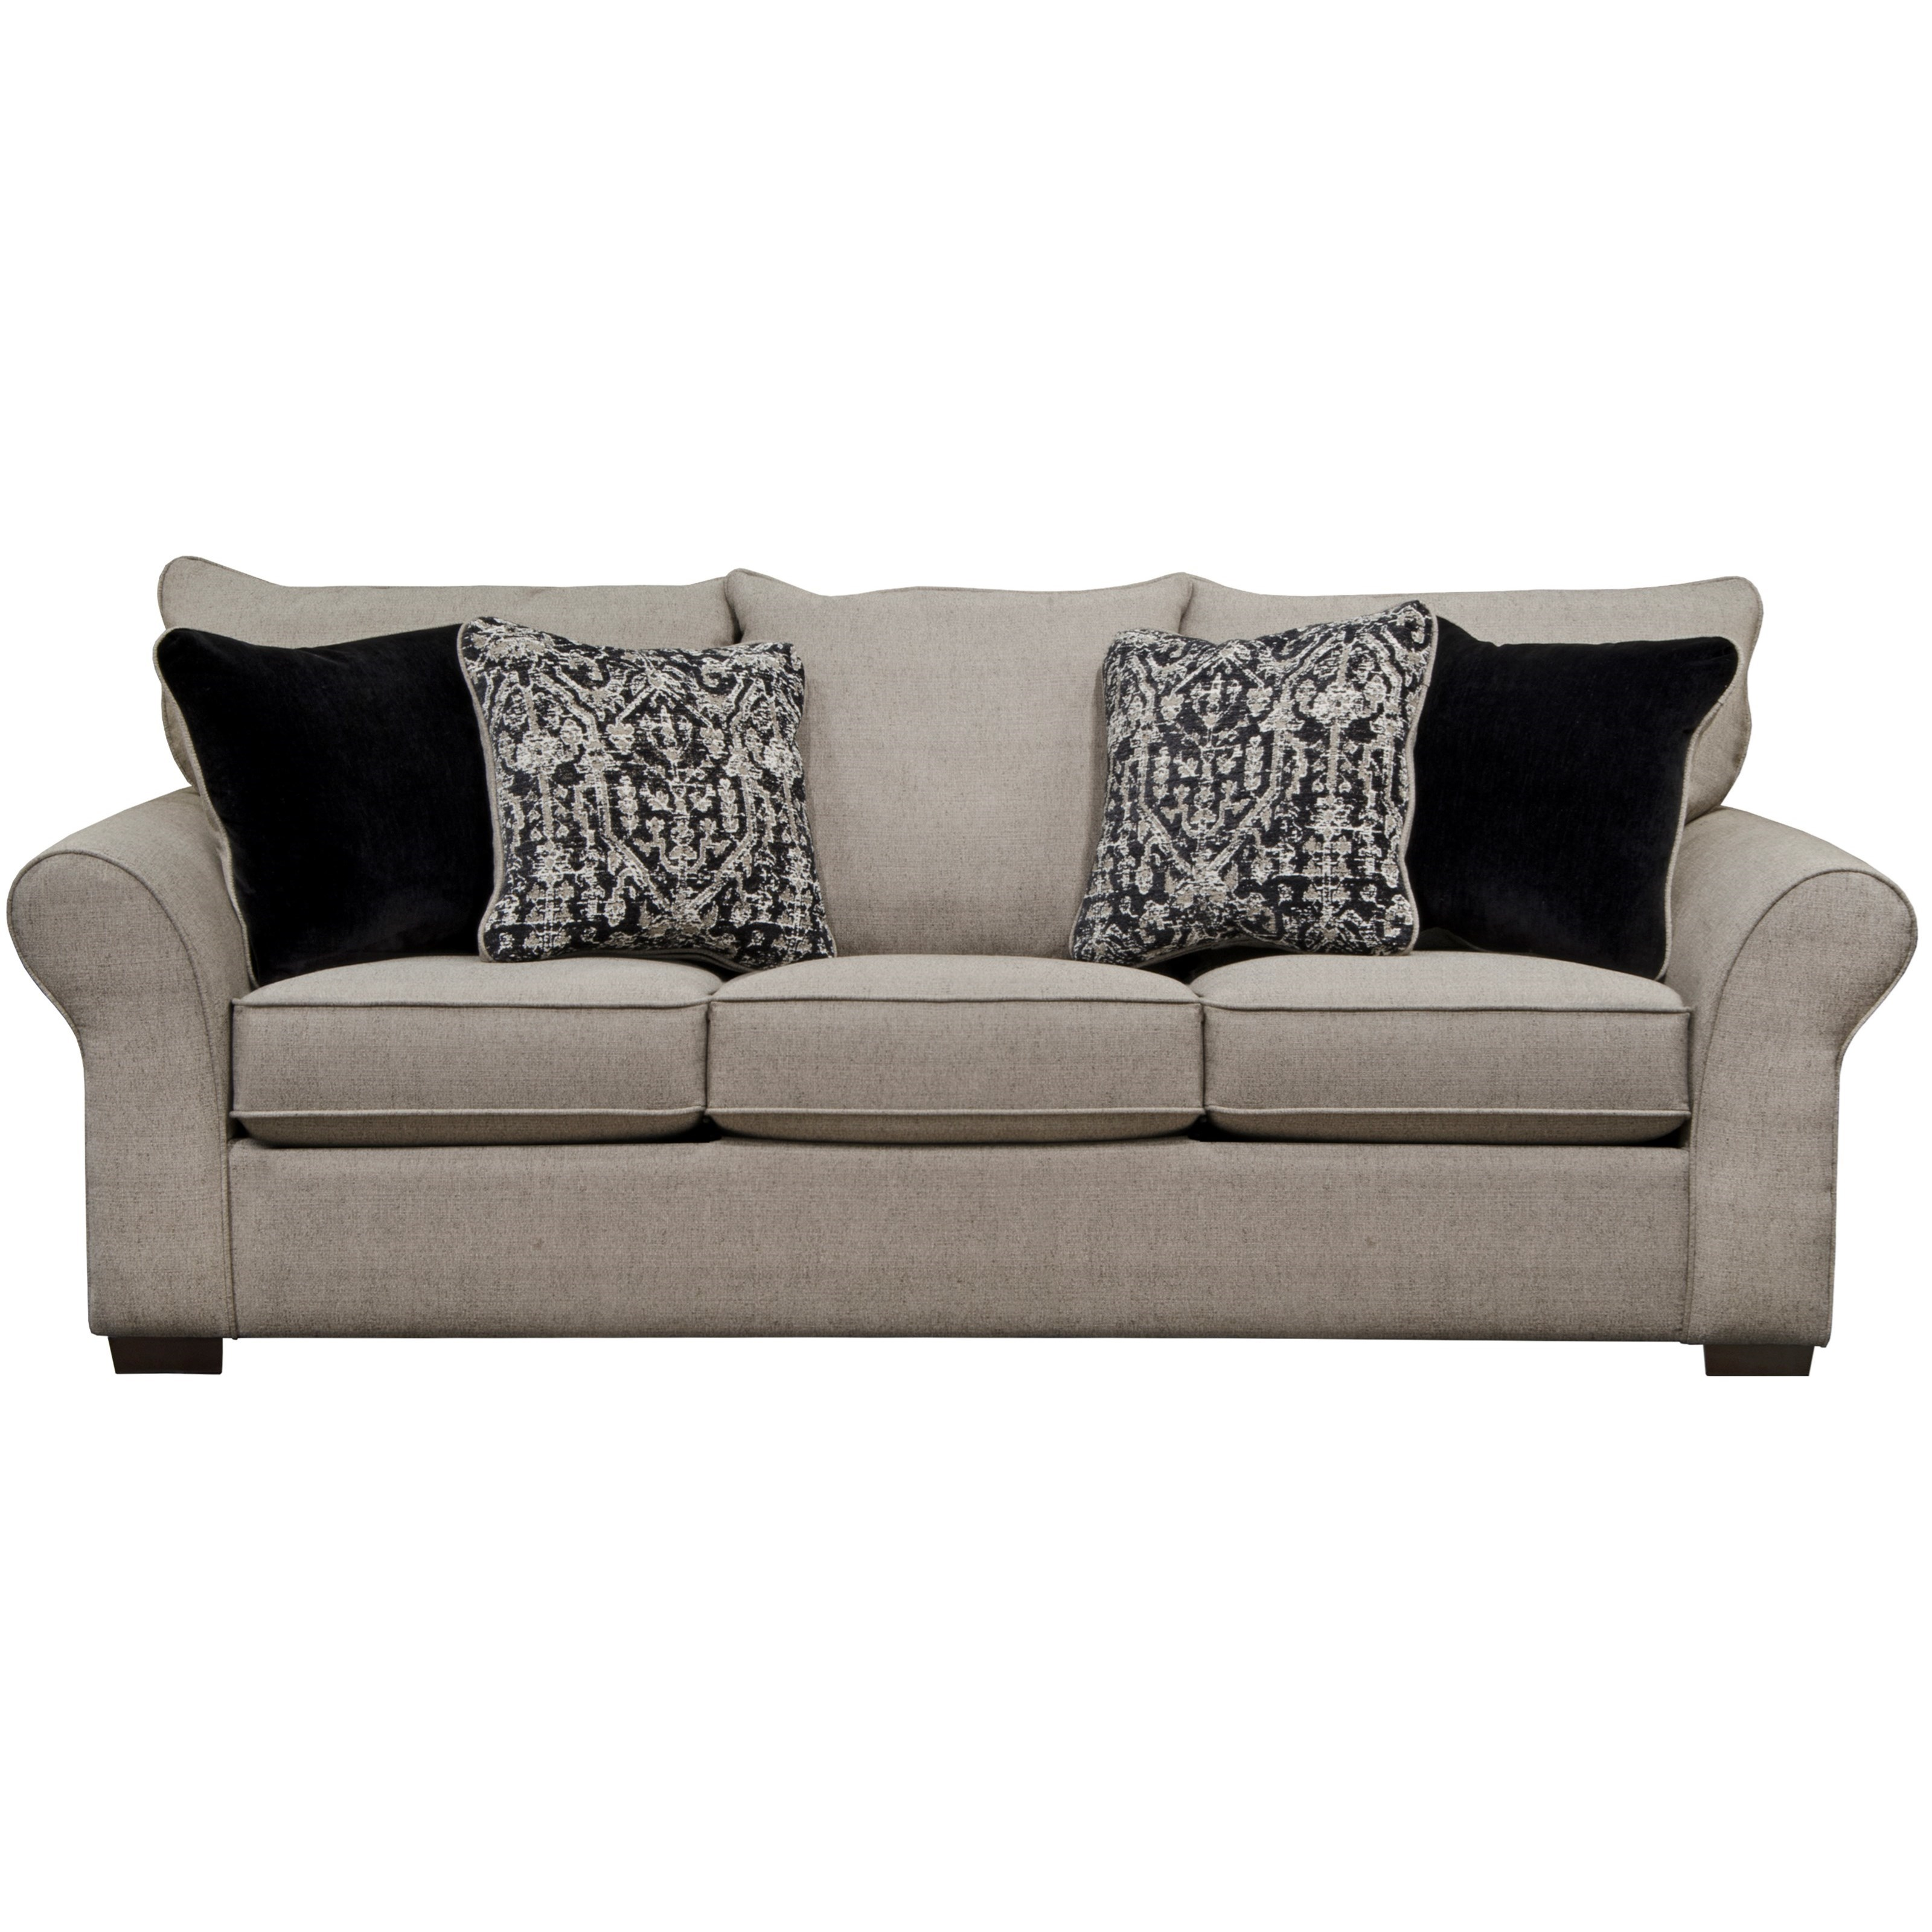 Different Types Of Sofa Settee Sock Arm: Transitional Sofa With Sock Arms By Jackson Furniture